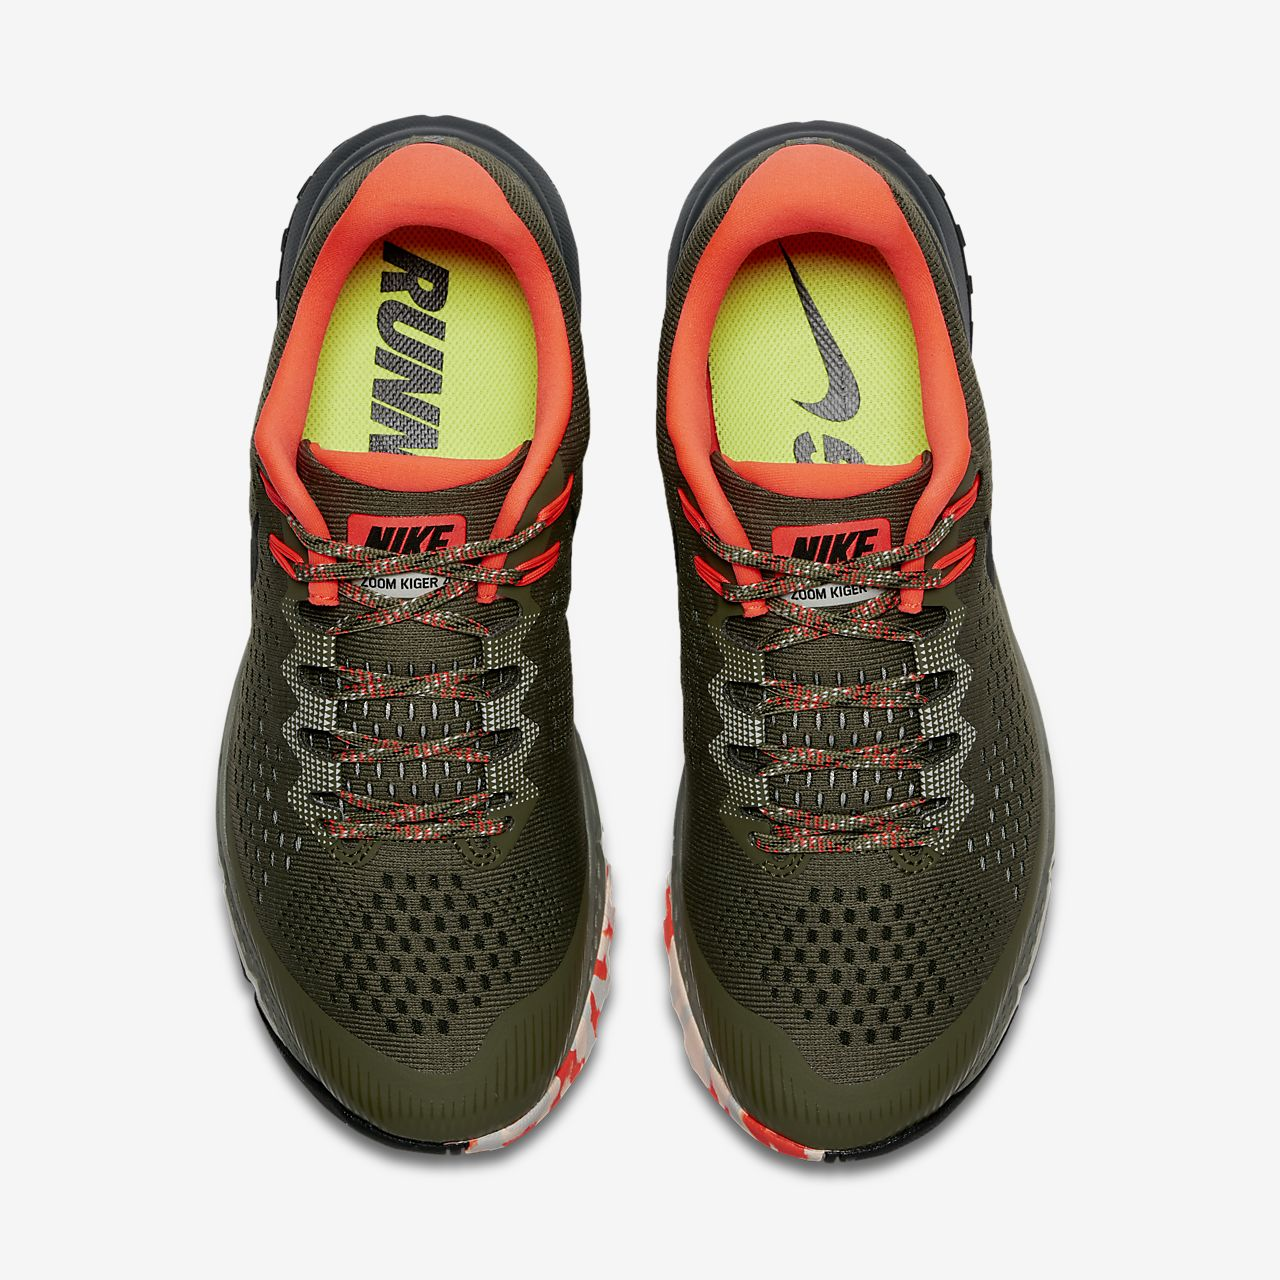 Nike Running Zoom Terra Kiger 4 Flymesh Sneakers discount best wholesale real sale online clearance shopping online extremely buy cheap real TCTaPe